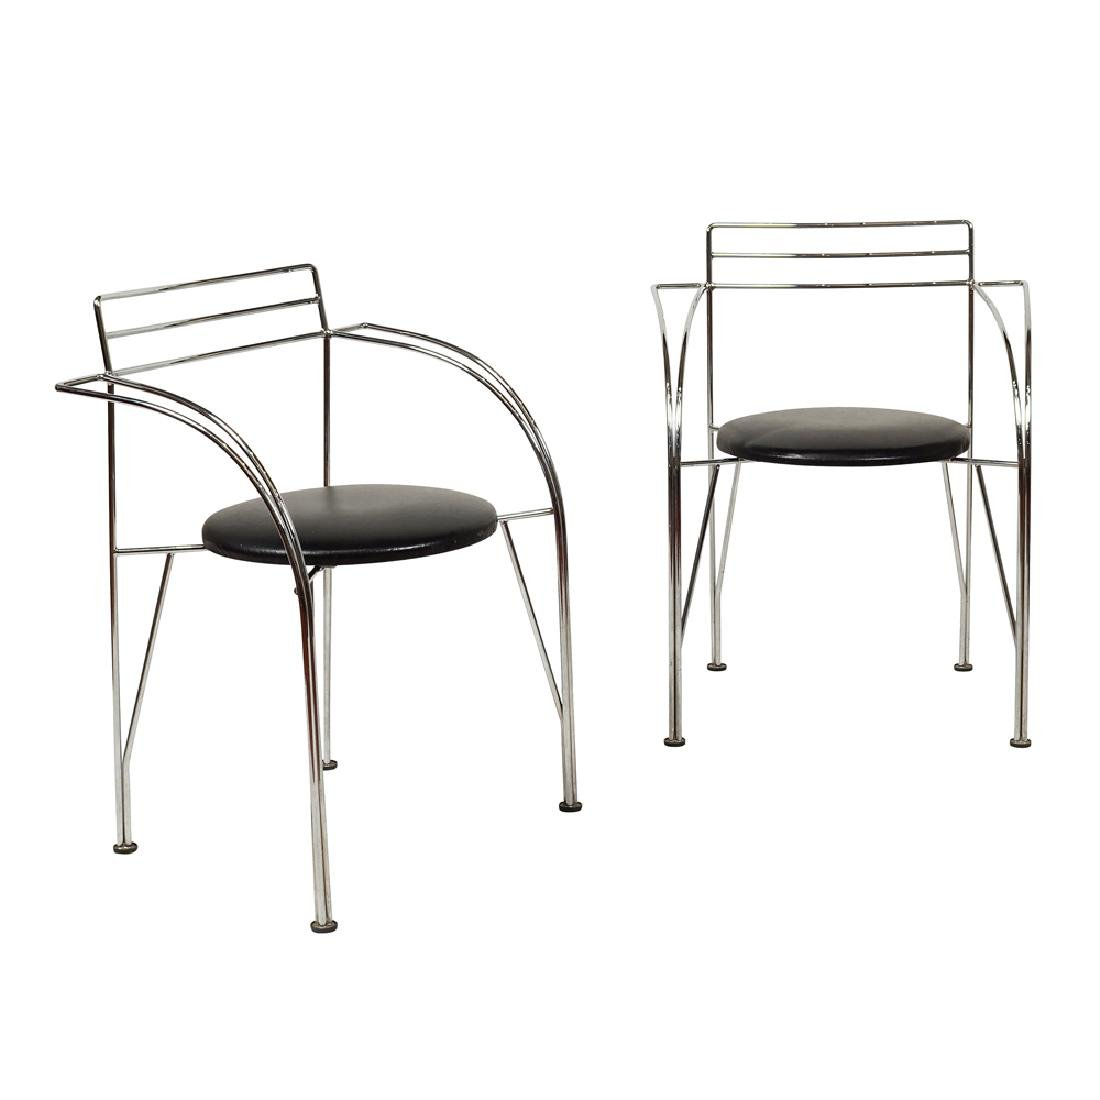 Pair of chairs with armrests France 20th century